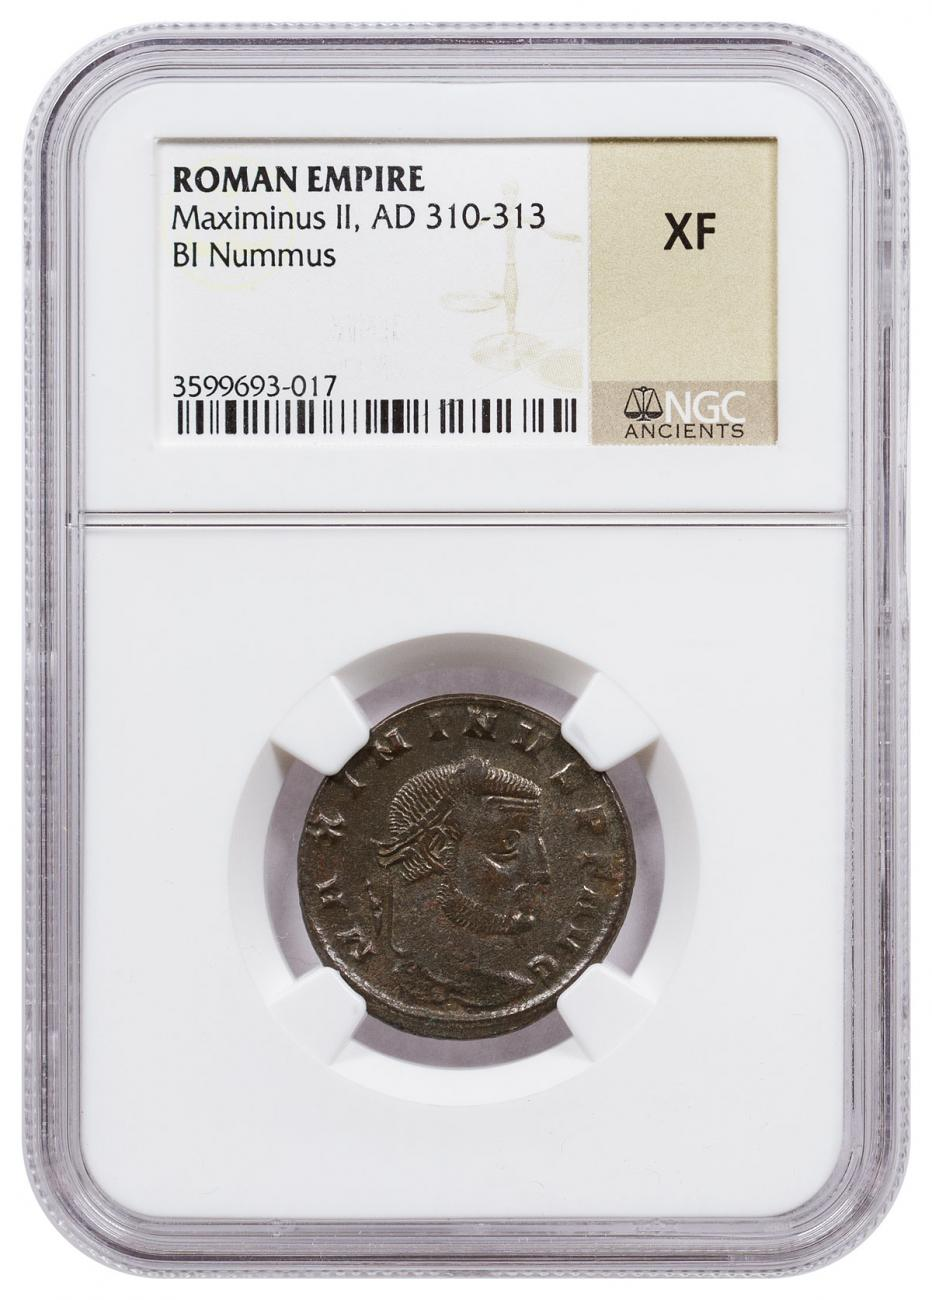 Roman Empire, Billion Nummus of Maximinus II (AD 310-313) NGC XF